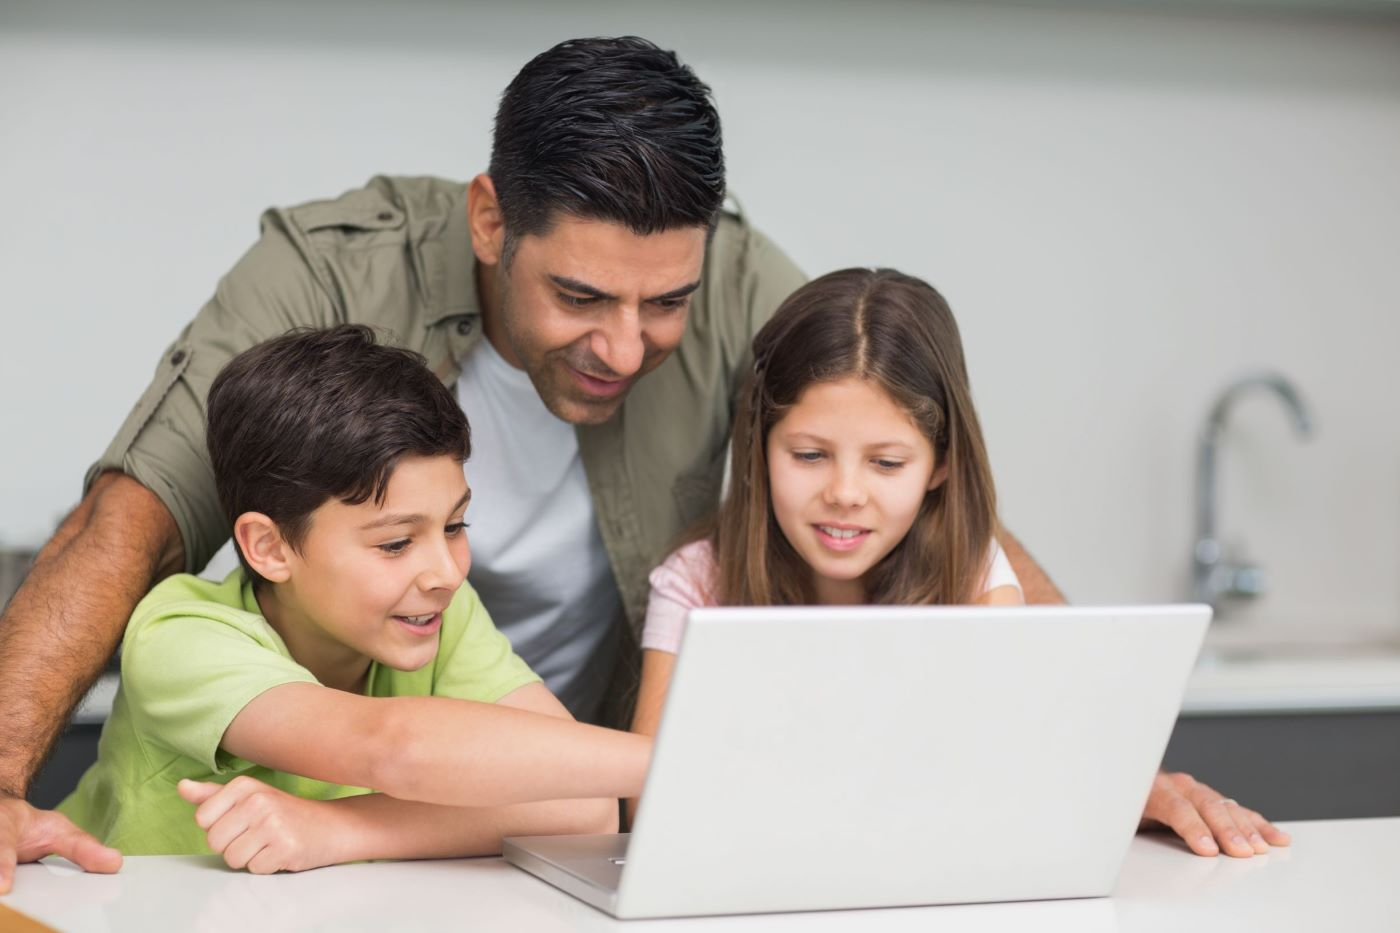 Father helps out his children with something on the laptop